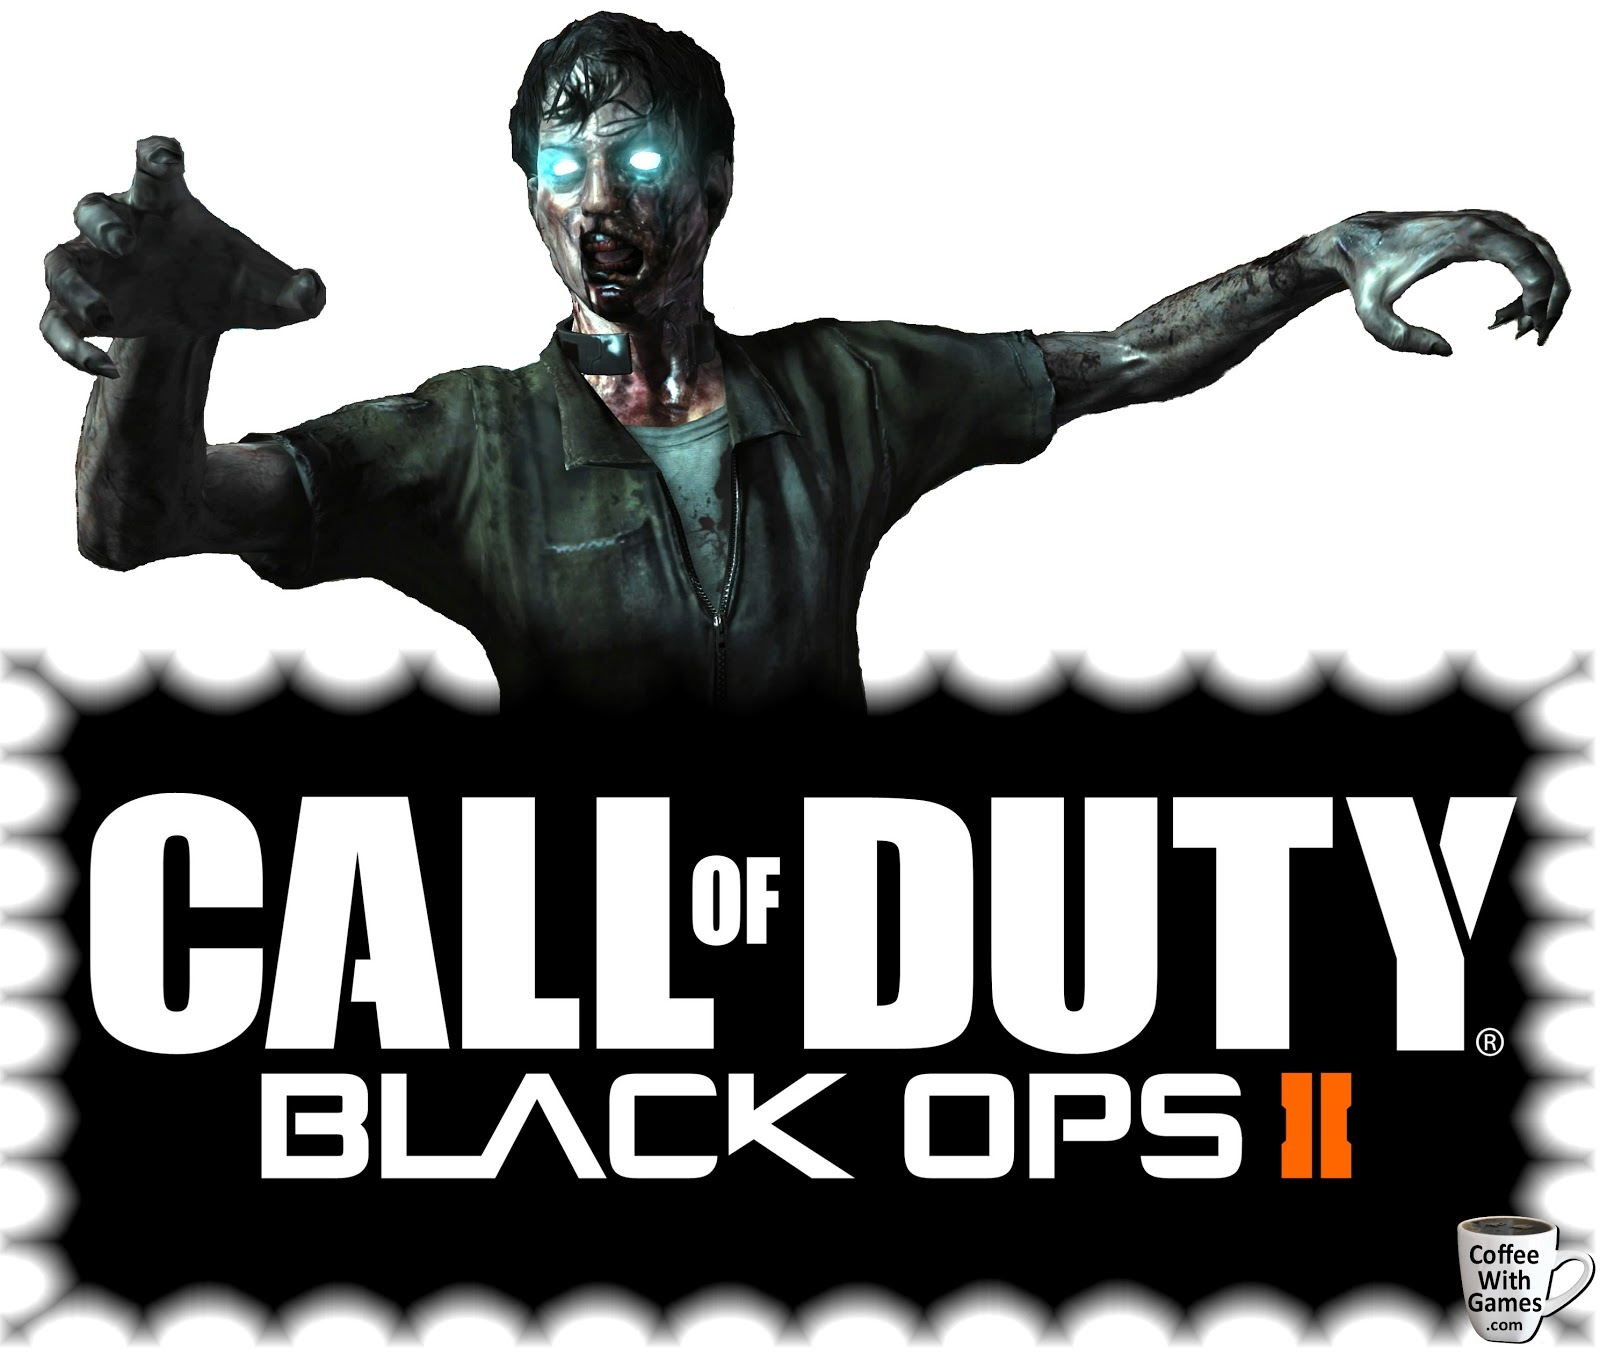 Coffee with games black ops ii will just be on the wii u call black ops ii will just be on the wii u call of duty black ops 2 not releasing for the 3ds ds or wii voltagebd Gallery